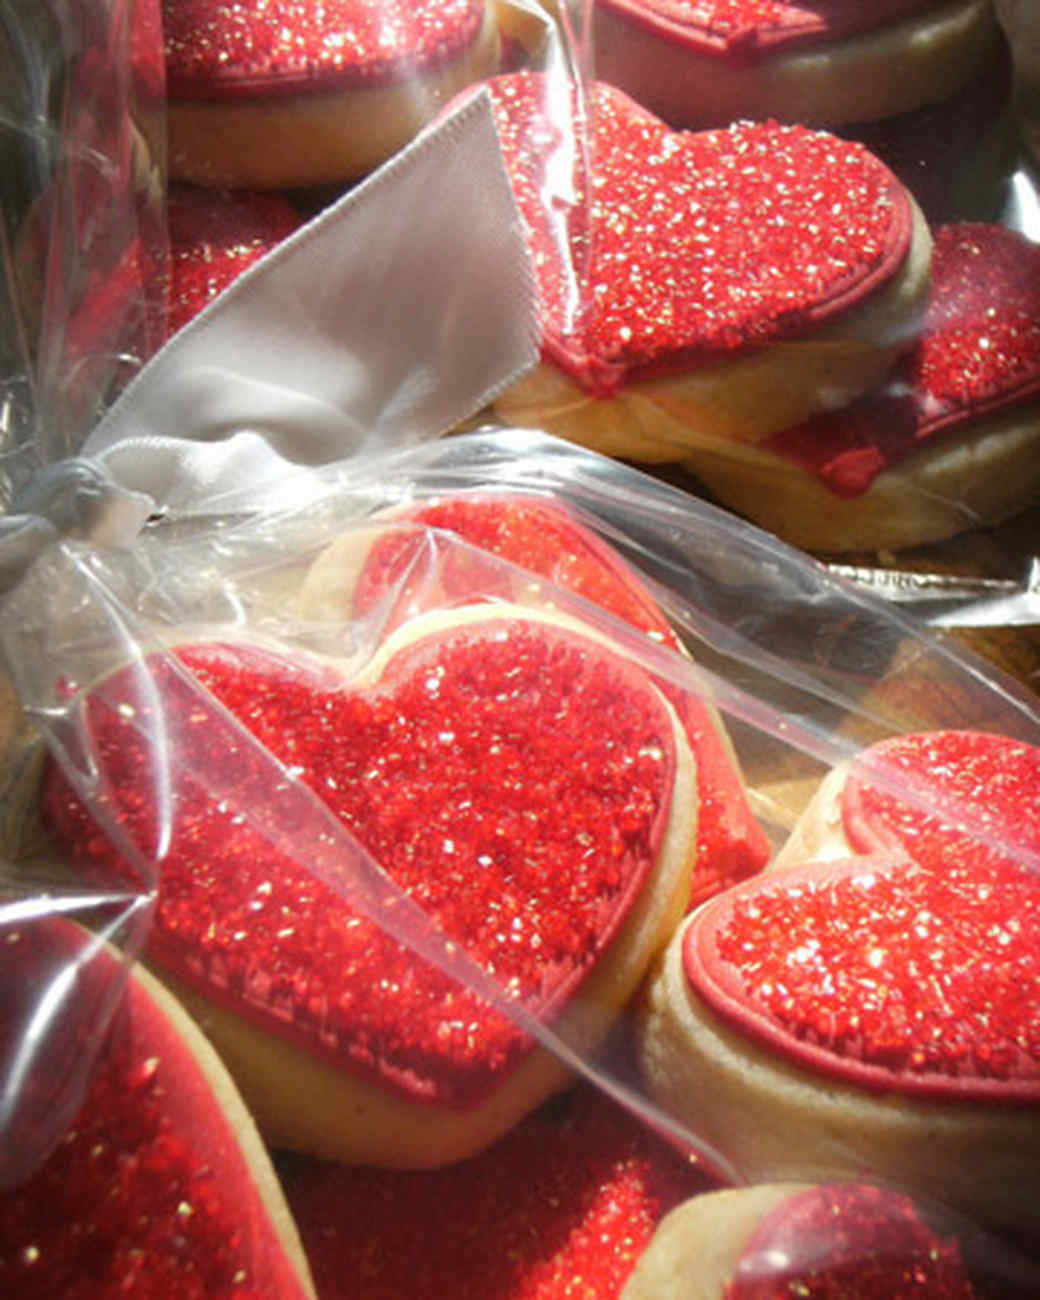 vday_treat_ugc09_sparkly_heart_cookies.jpg